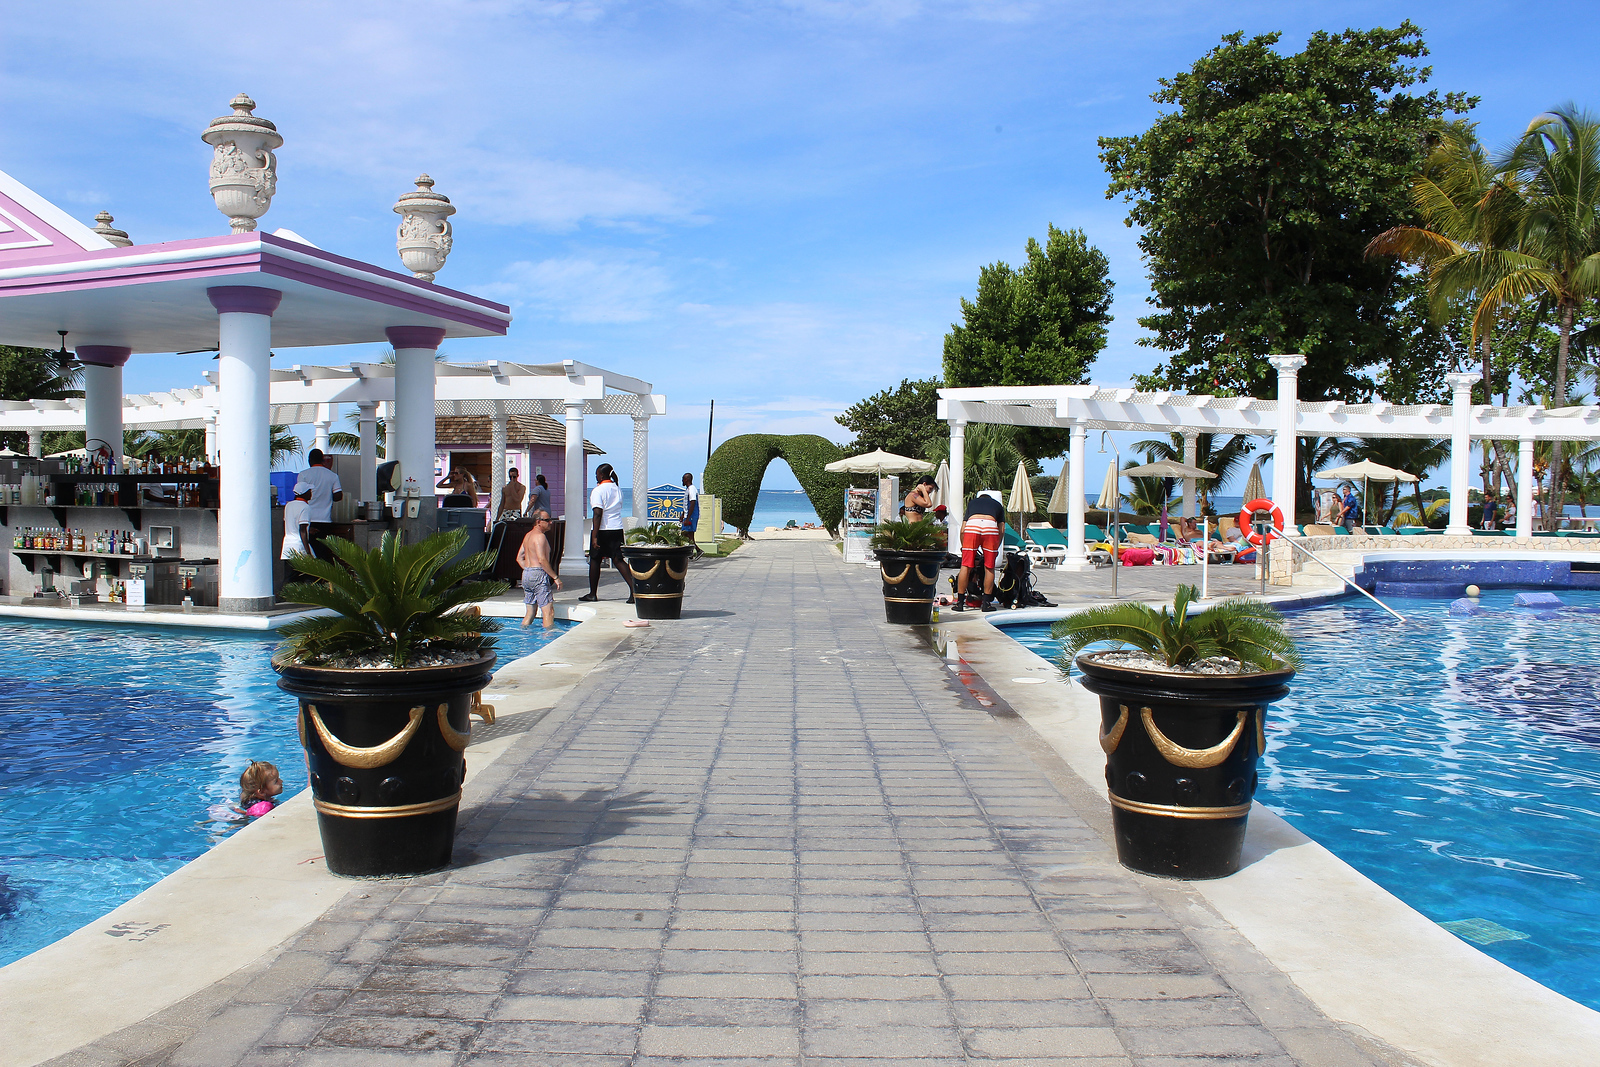 Review of the Hotel Riu Palace Negril - View of the two swimming pools